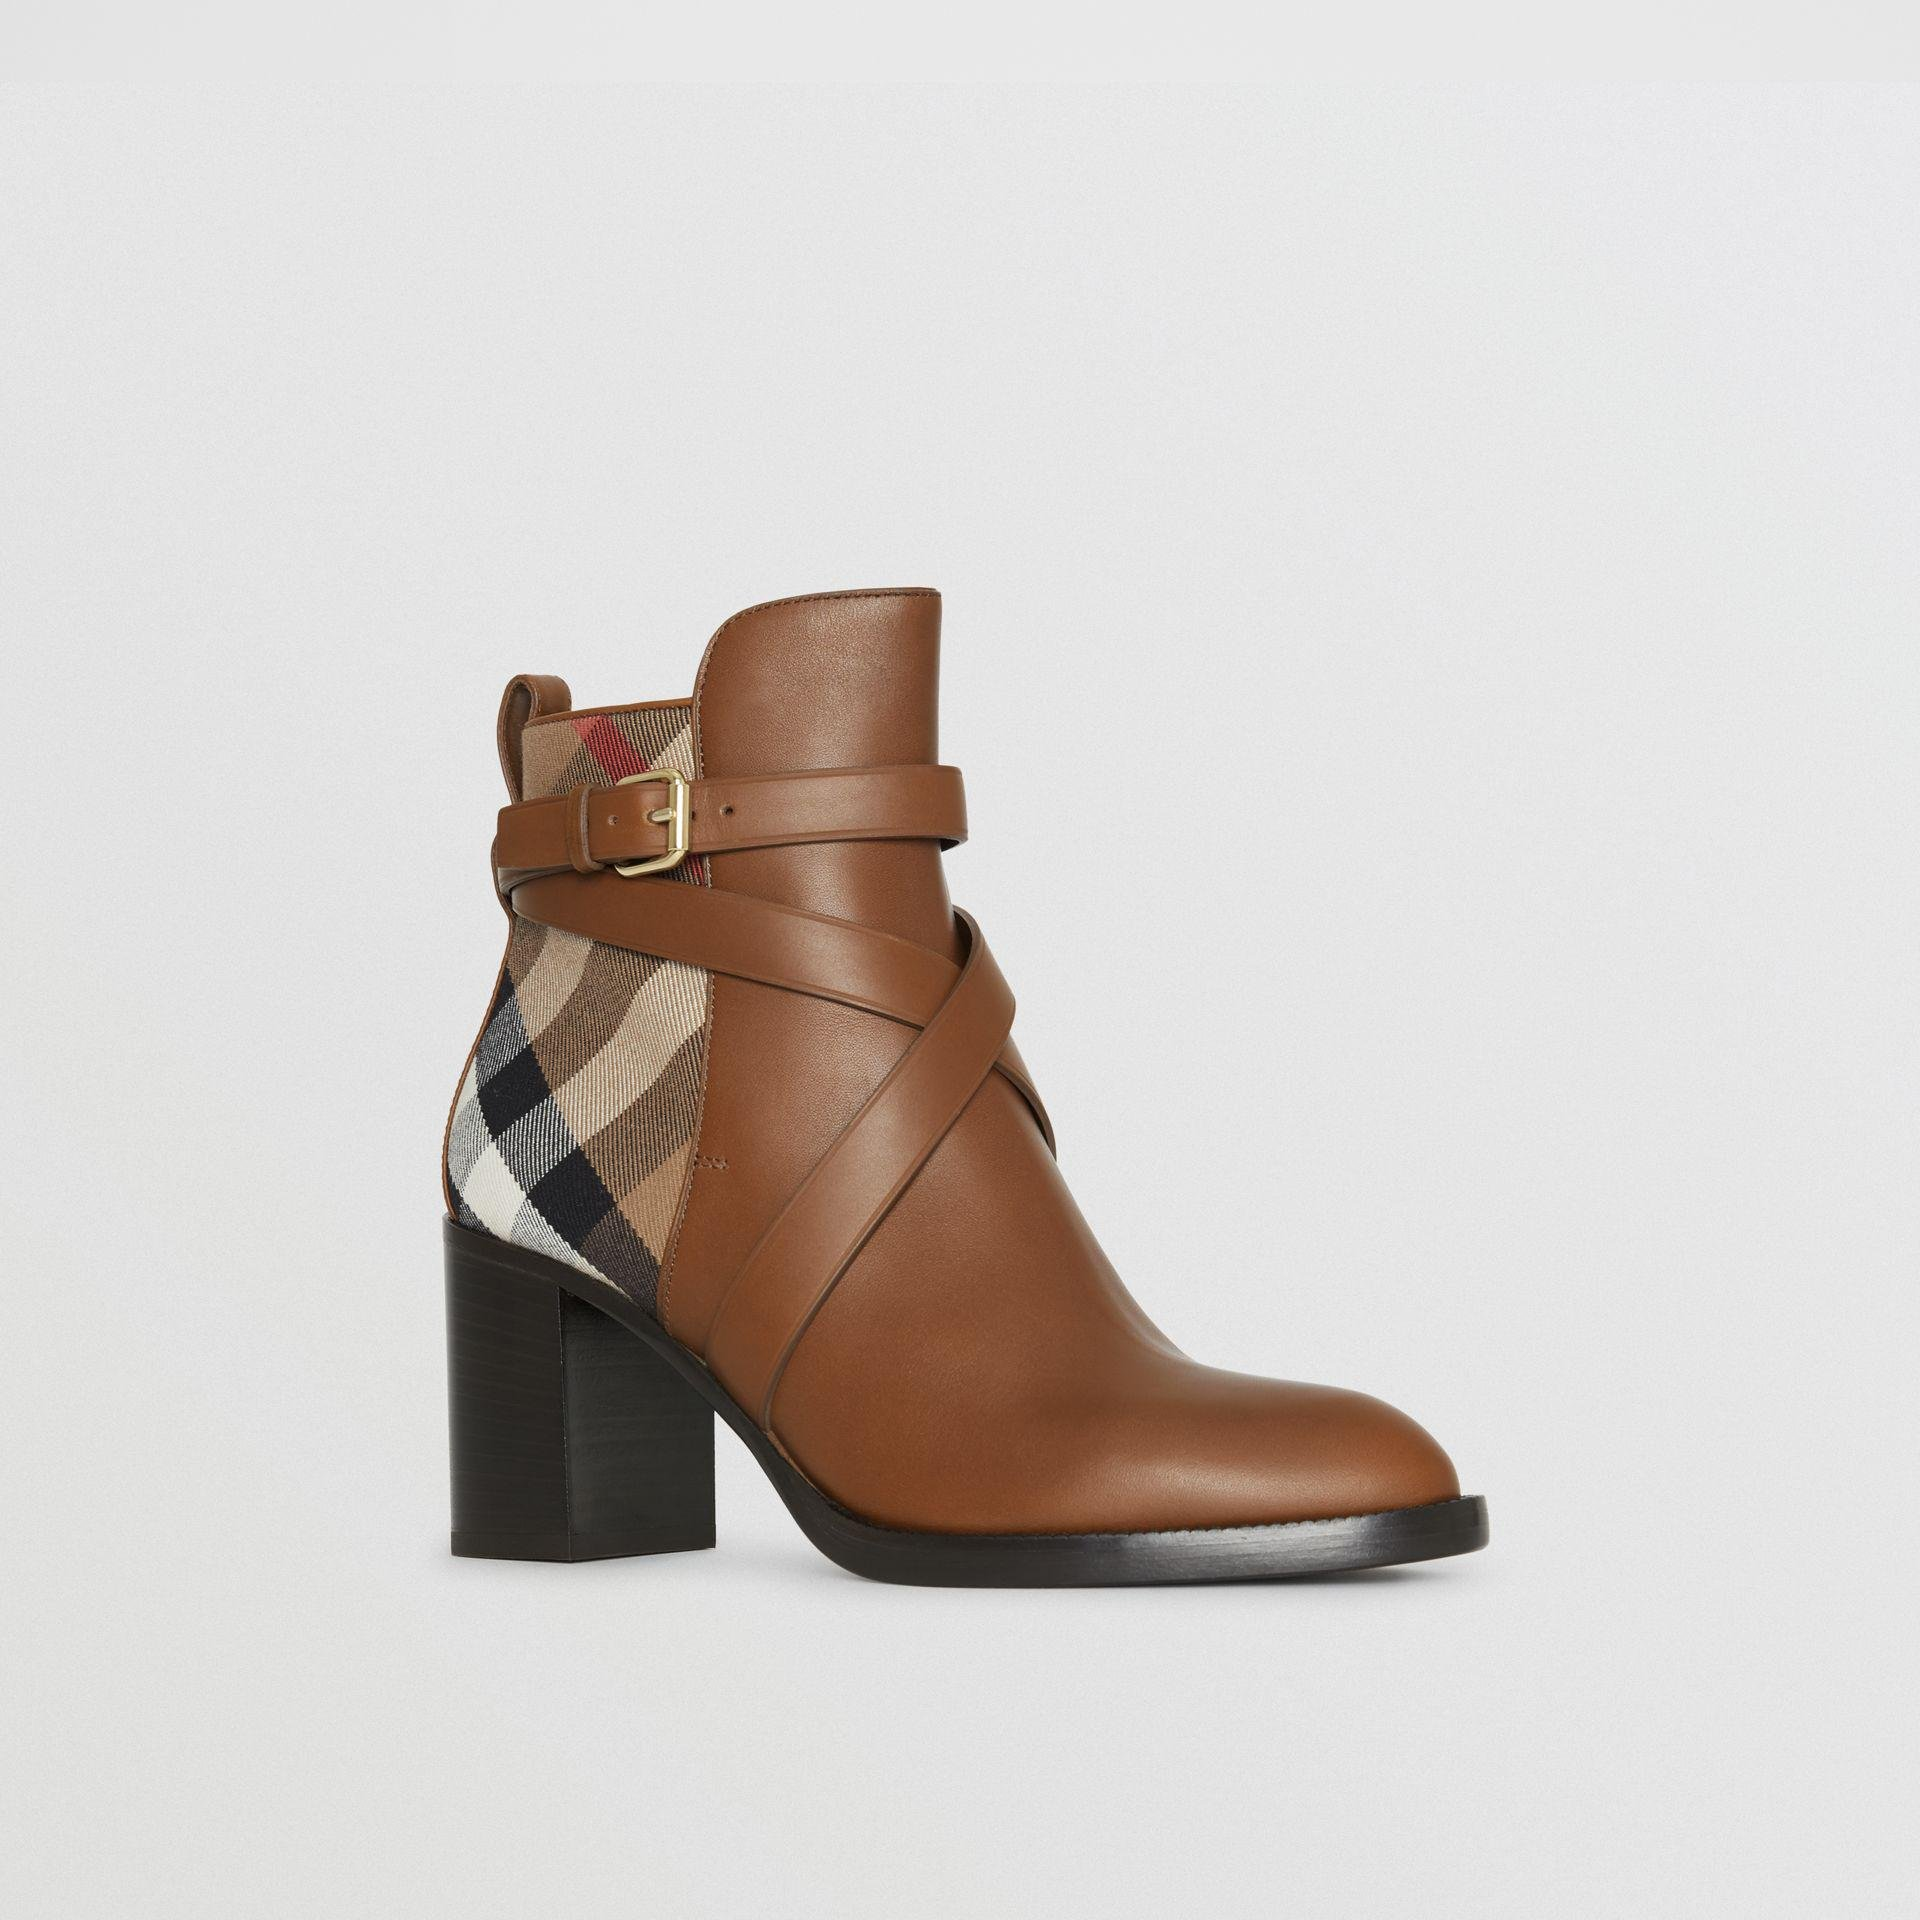 5c70b7af747 Lyst - Burberry House Check And Leather Ankle Boots Bright Camel in ...